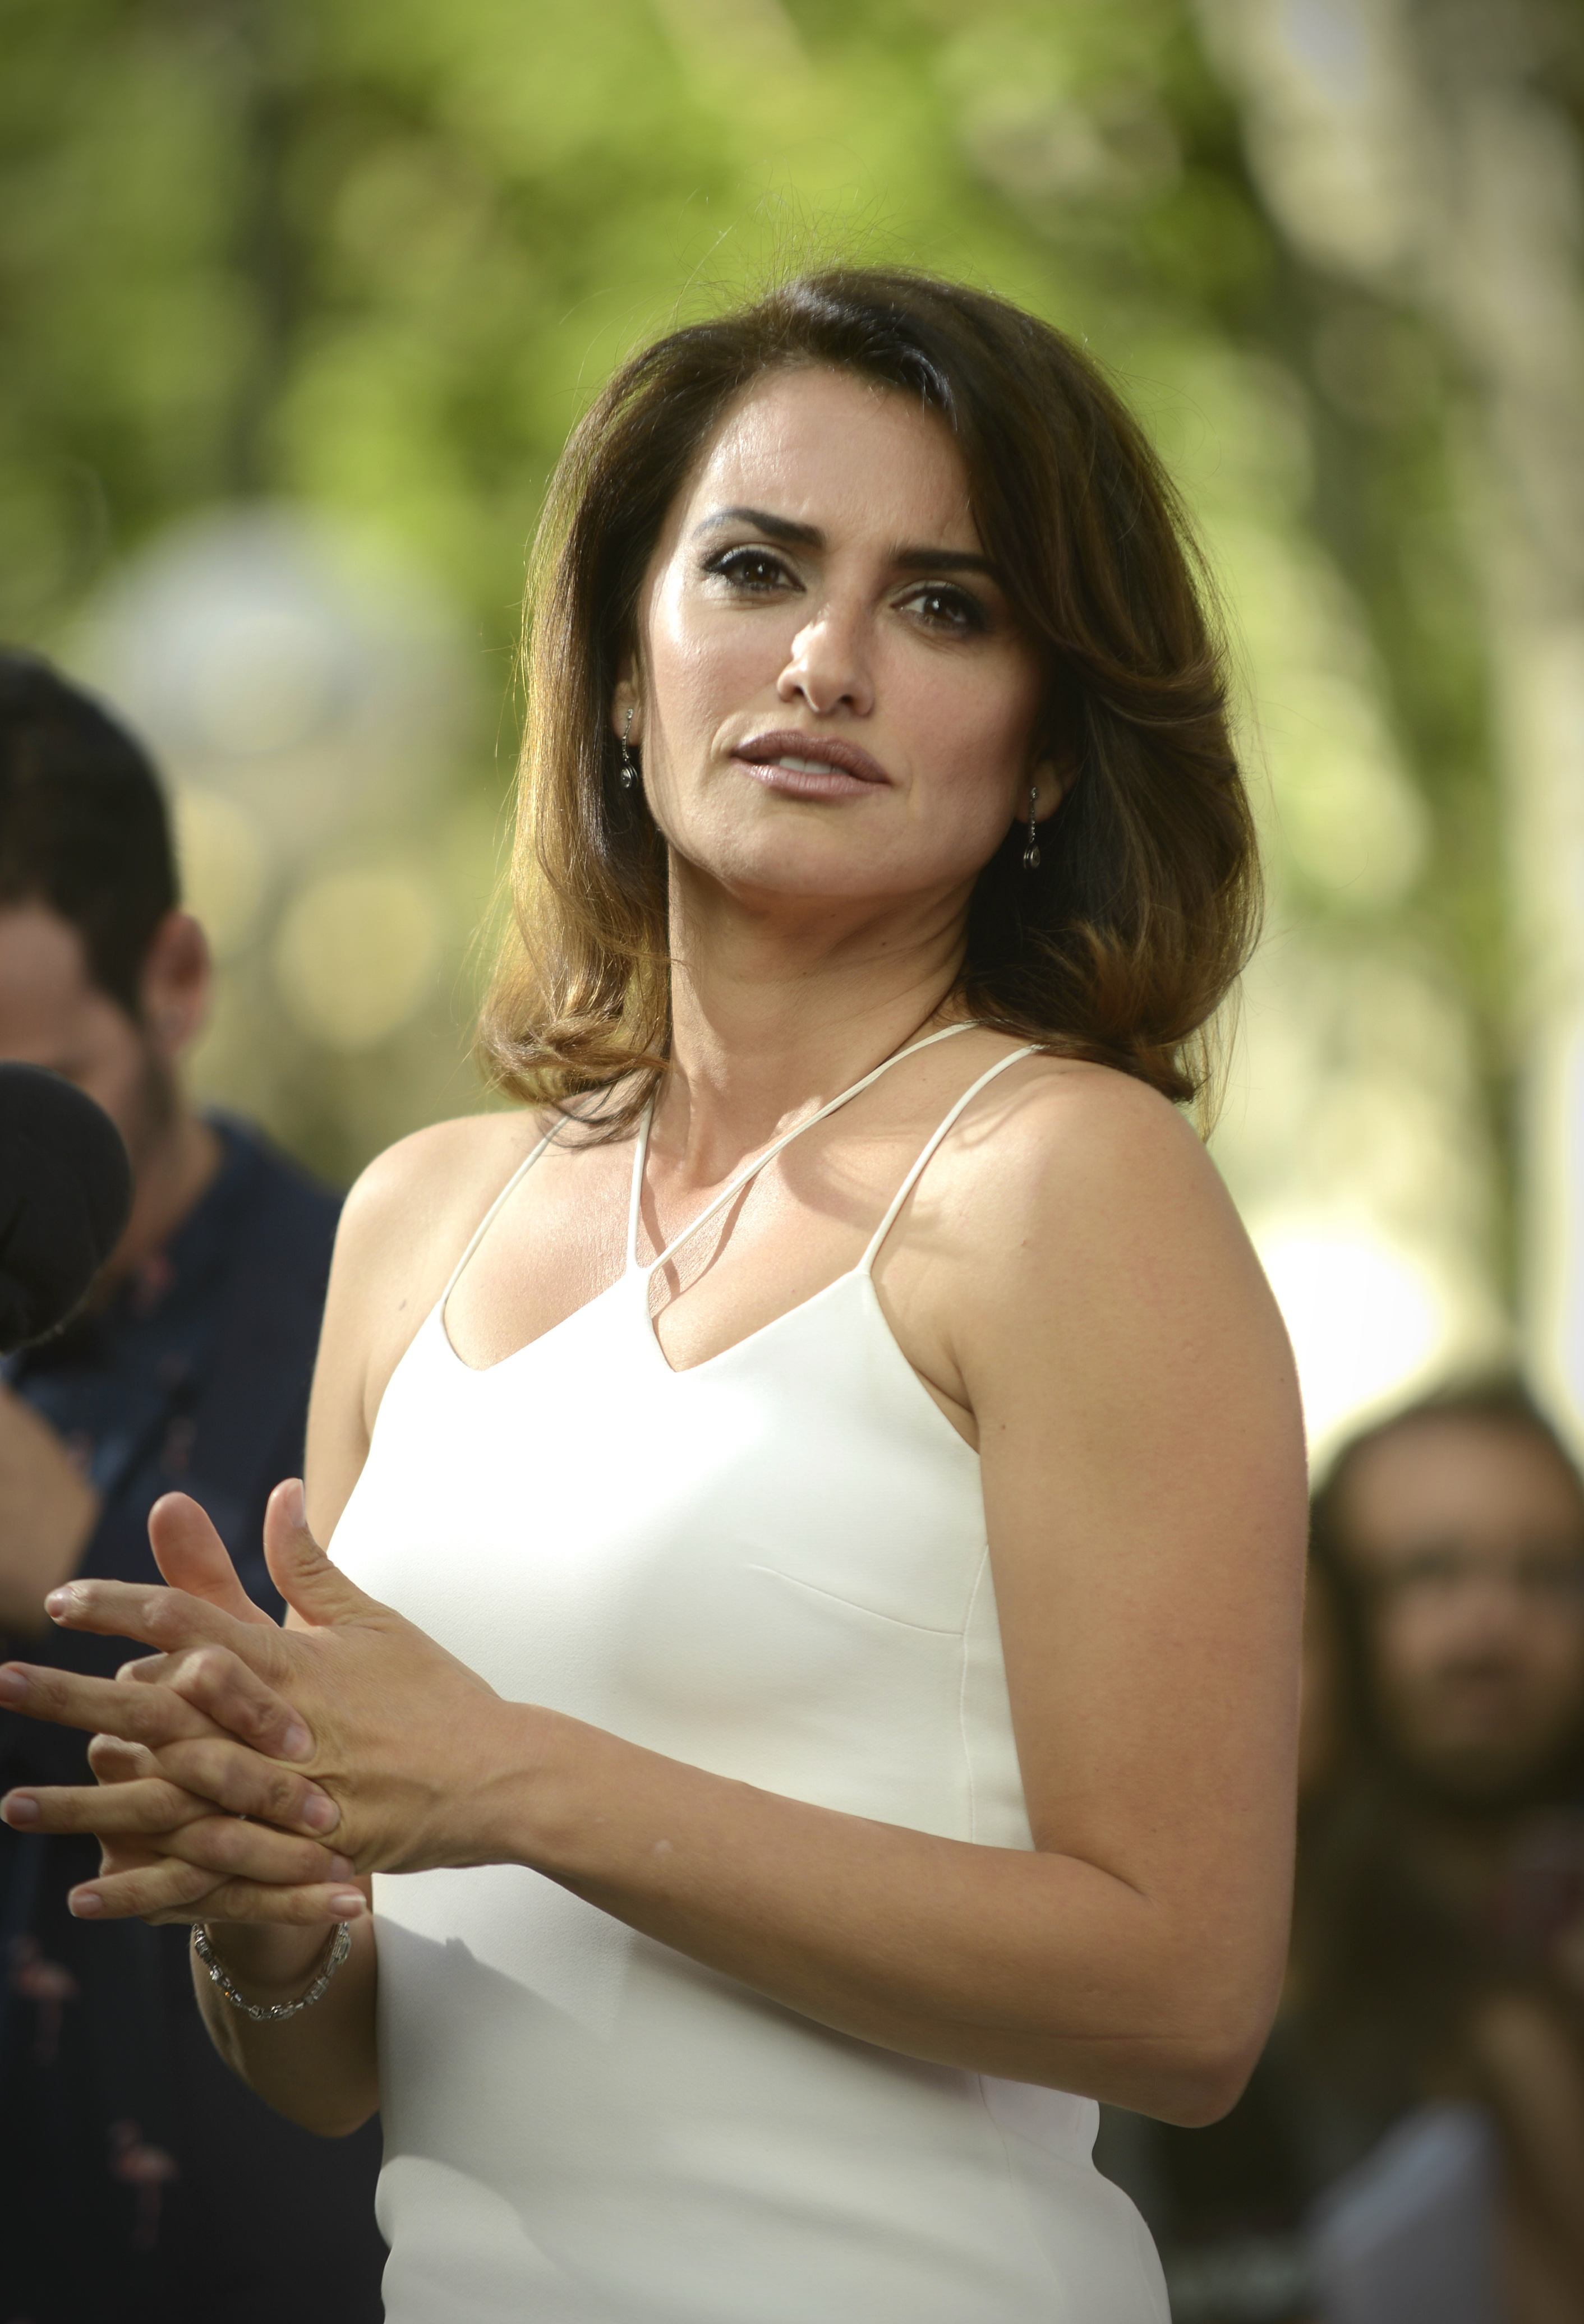 penelope cruz estatura